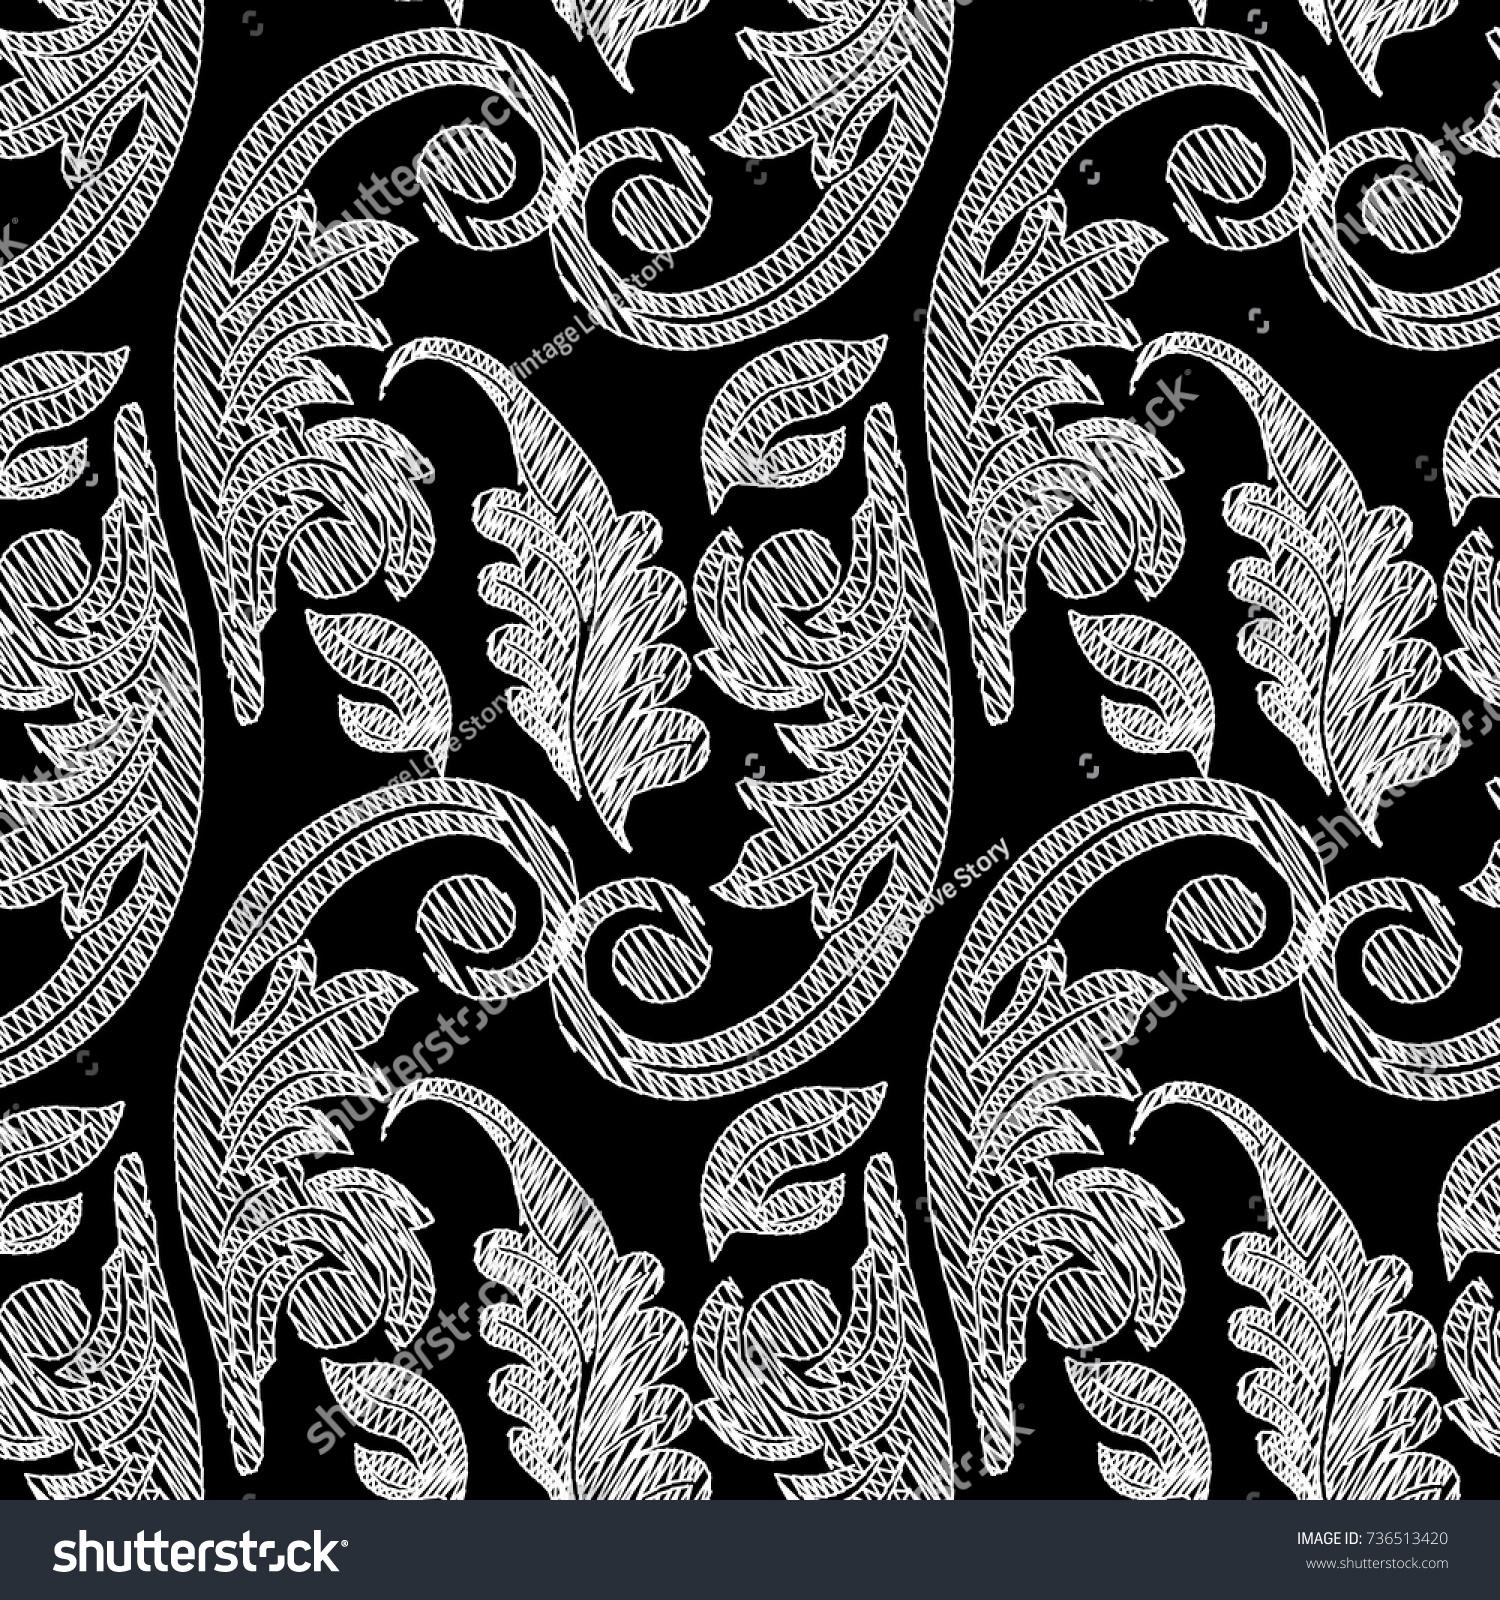 leaf scroll wallpaper vintage patterns - photo #25